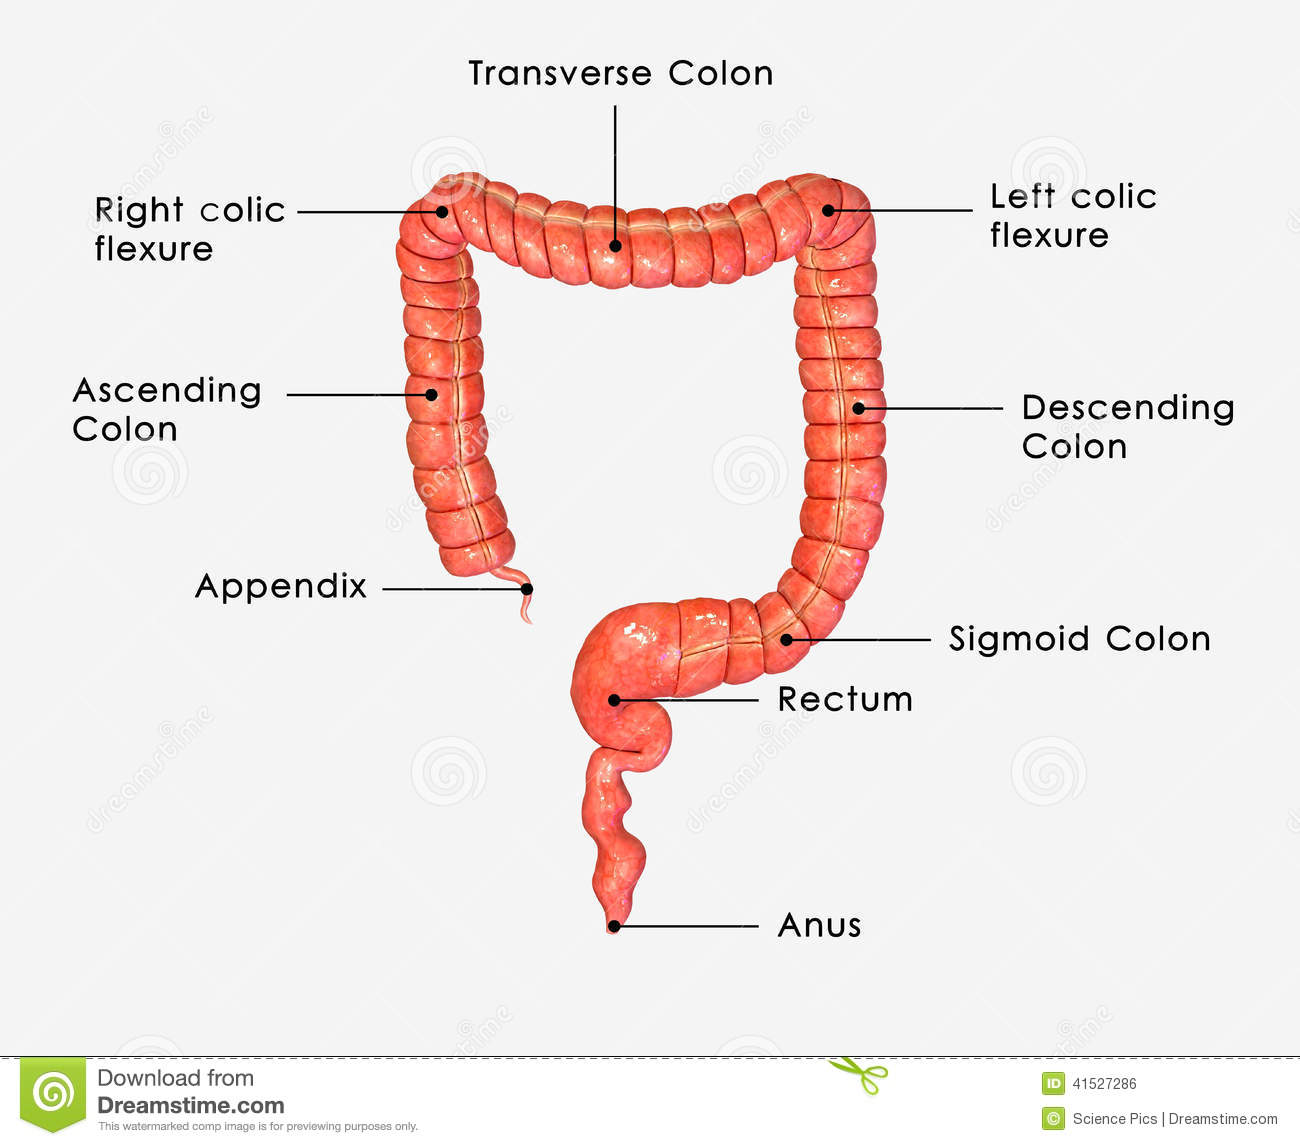 large intestine Being an indispensable part of human digestive system, the large intestine function is to absorb some of important elements of food, read the rest here.